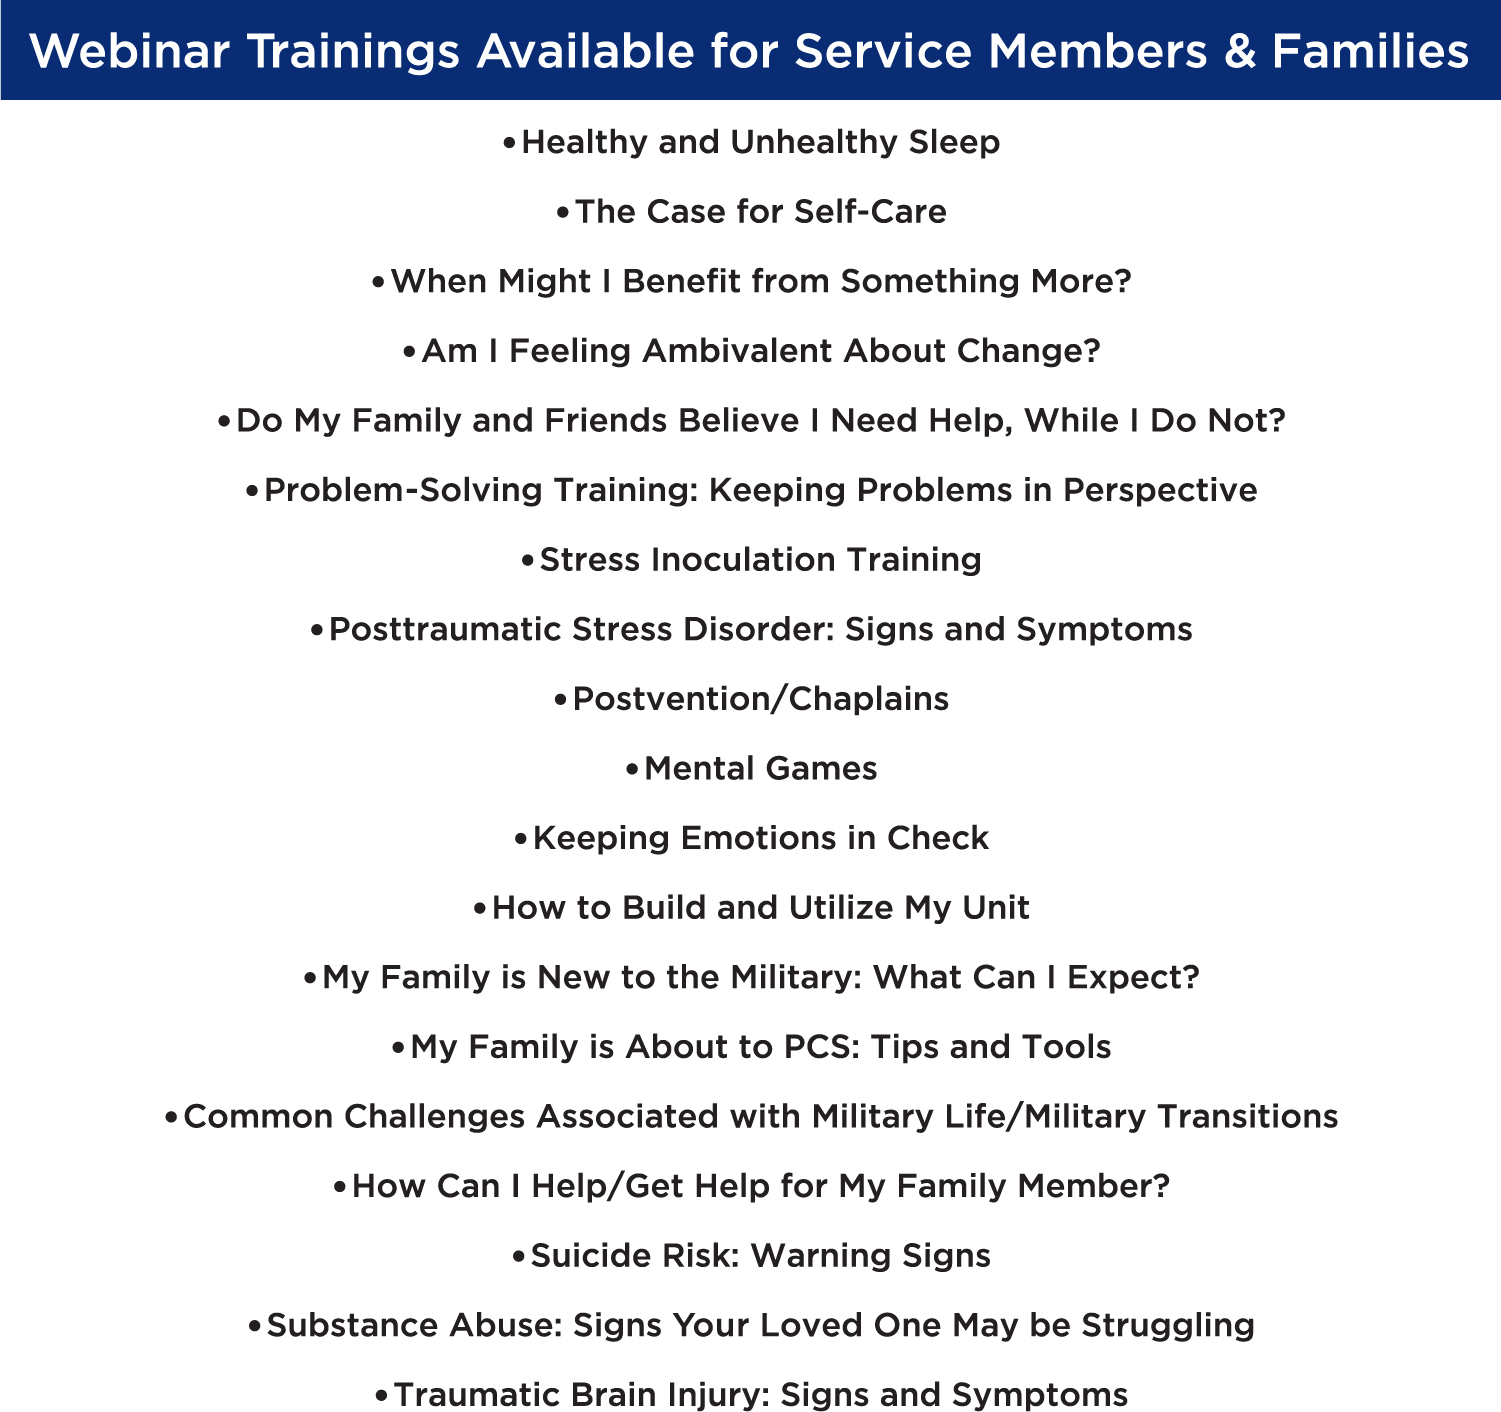 Webinar Trainings for Service members & Families